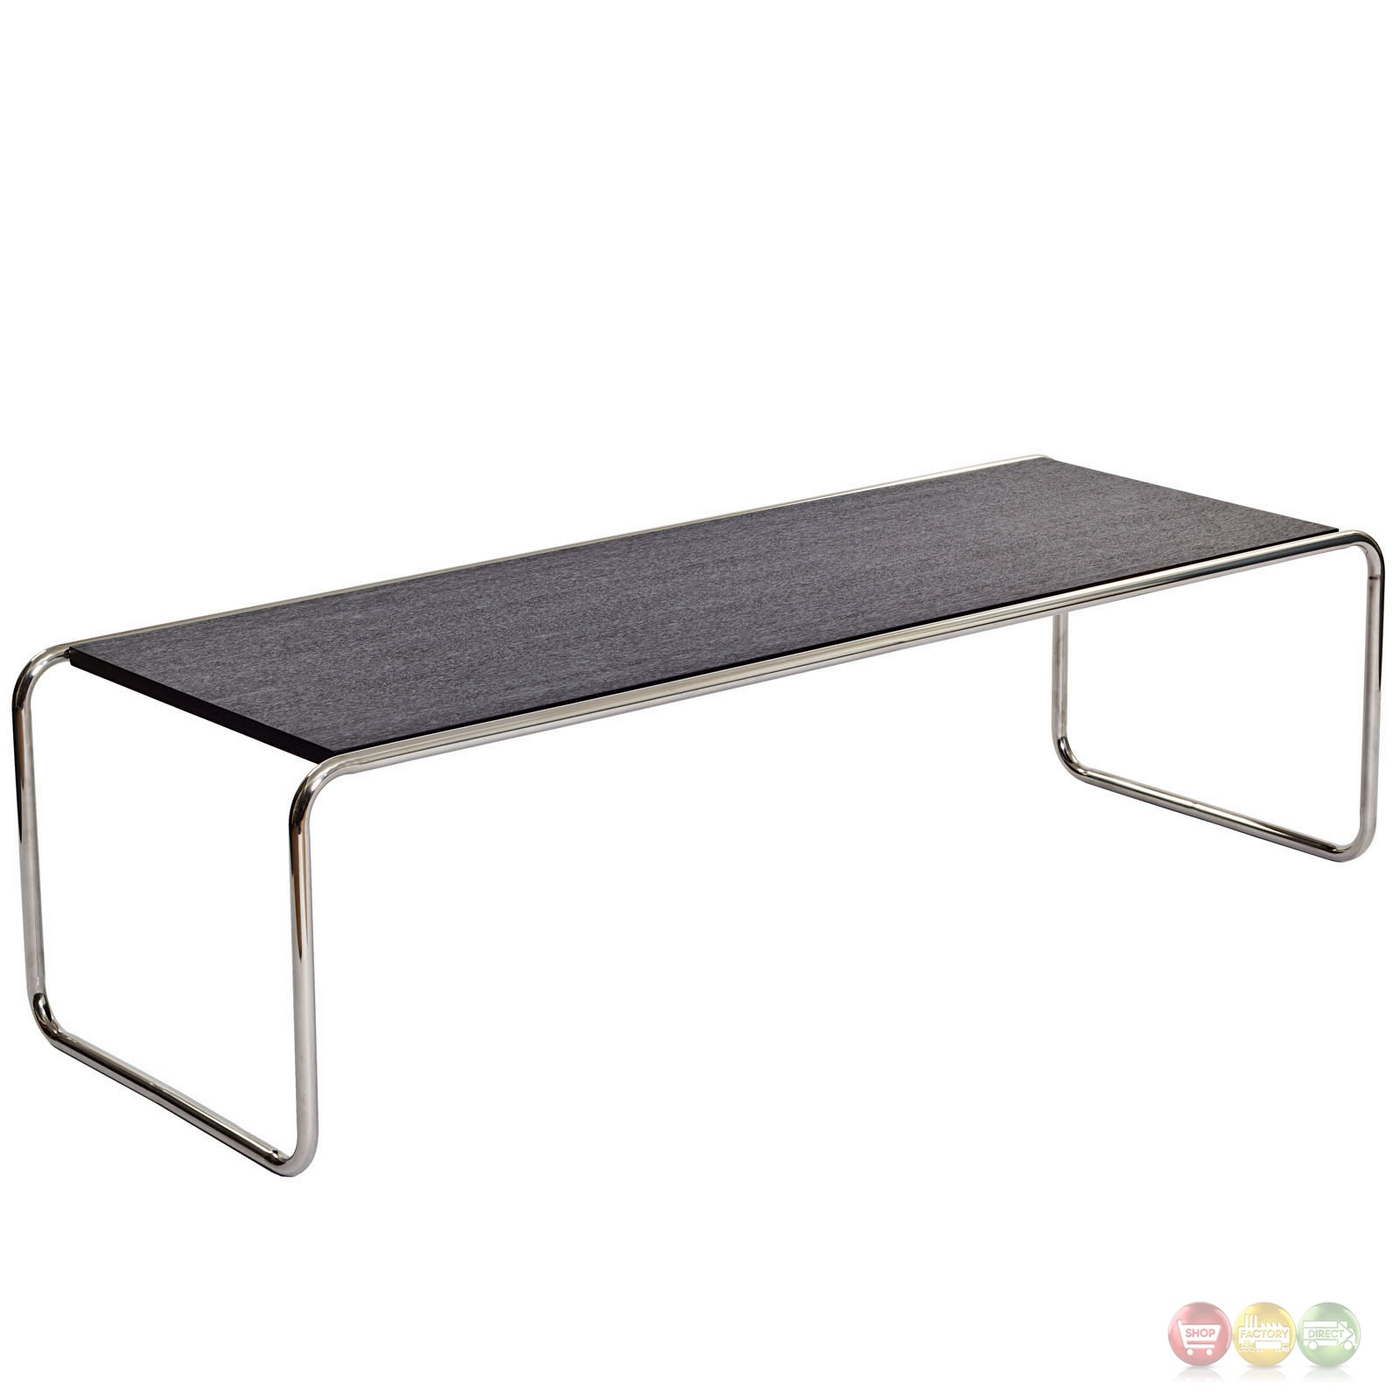 Wood And Chrome Pierceson Coffee Table: Blox Contemporary Wood Top Nesting Coffee Table With